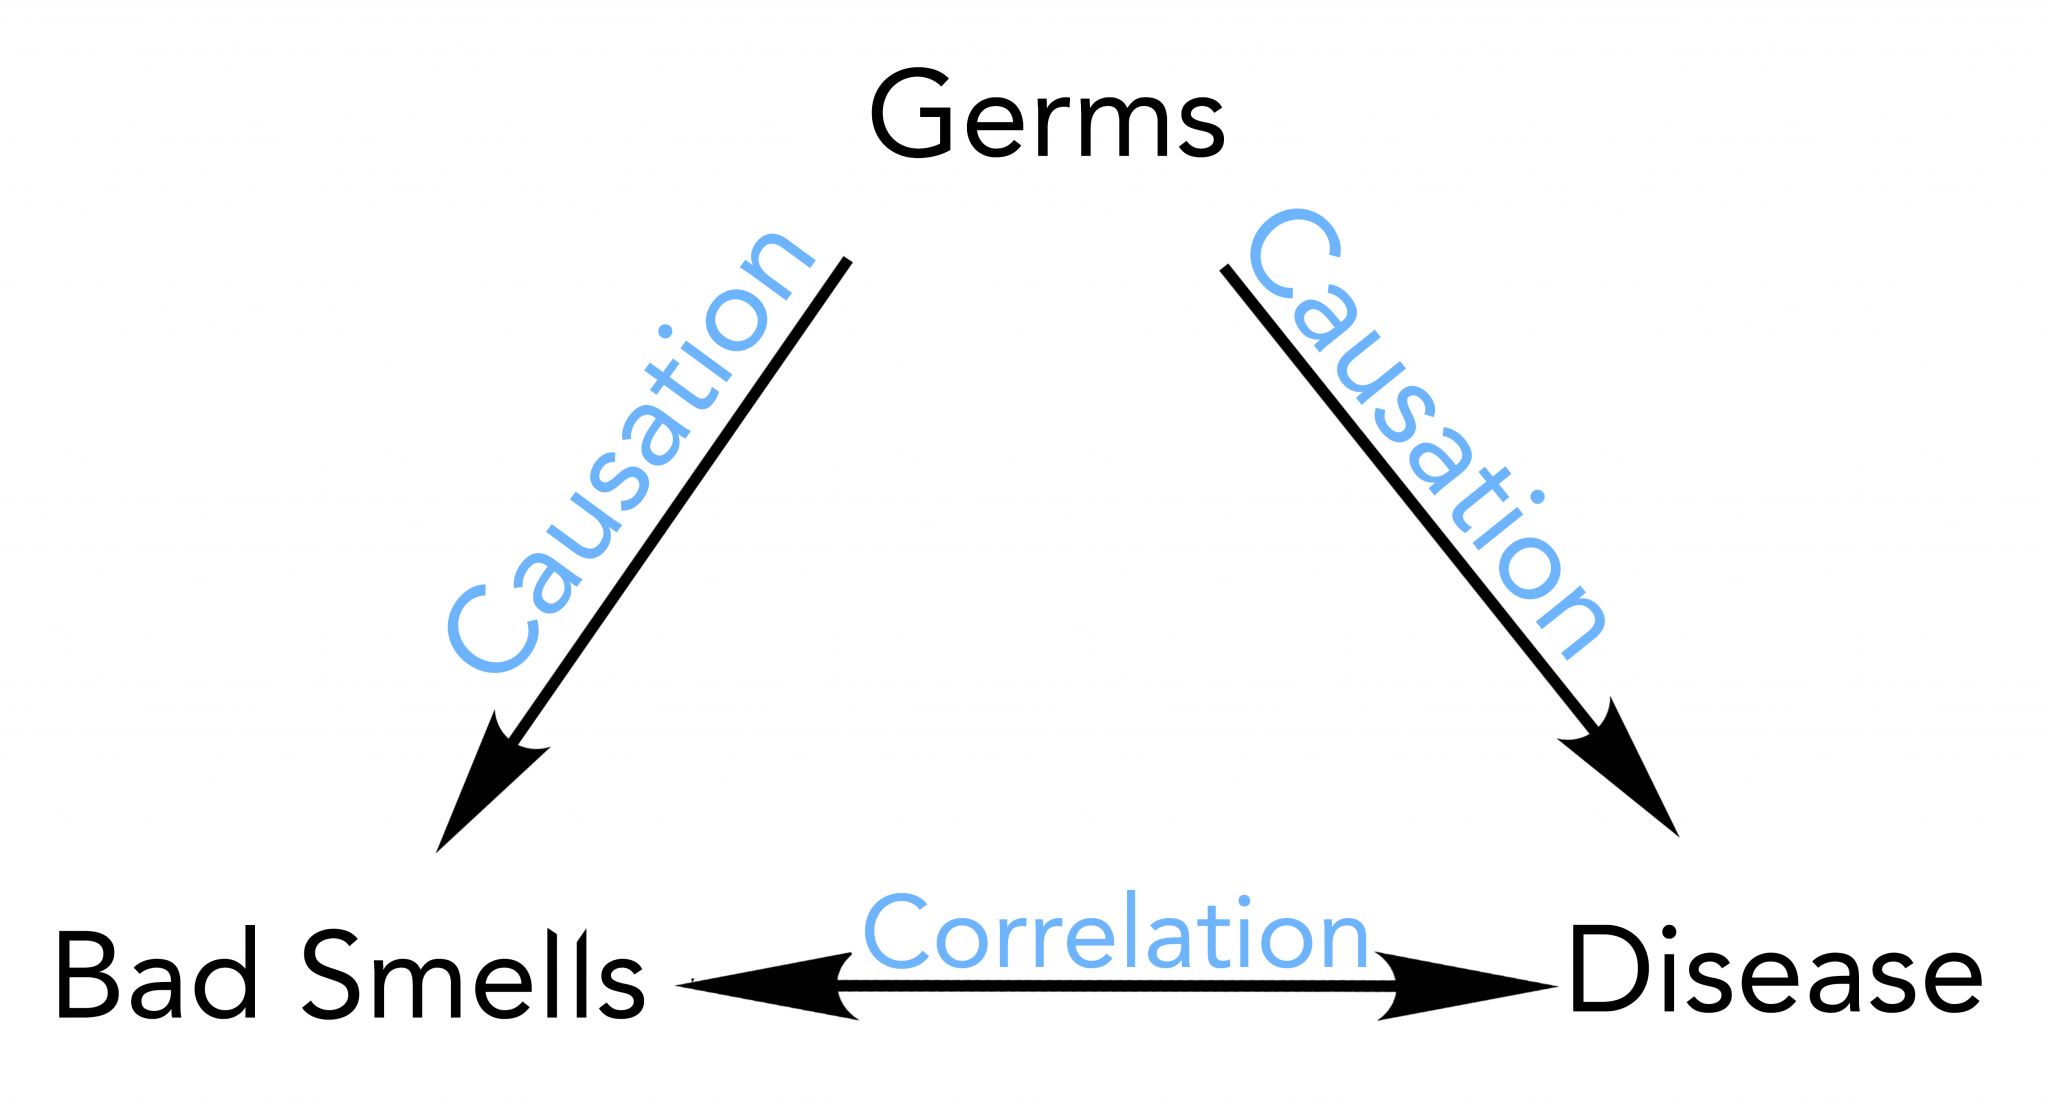 Chart showing germs cause disease